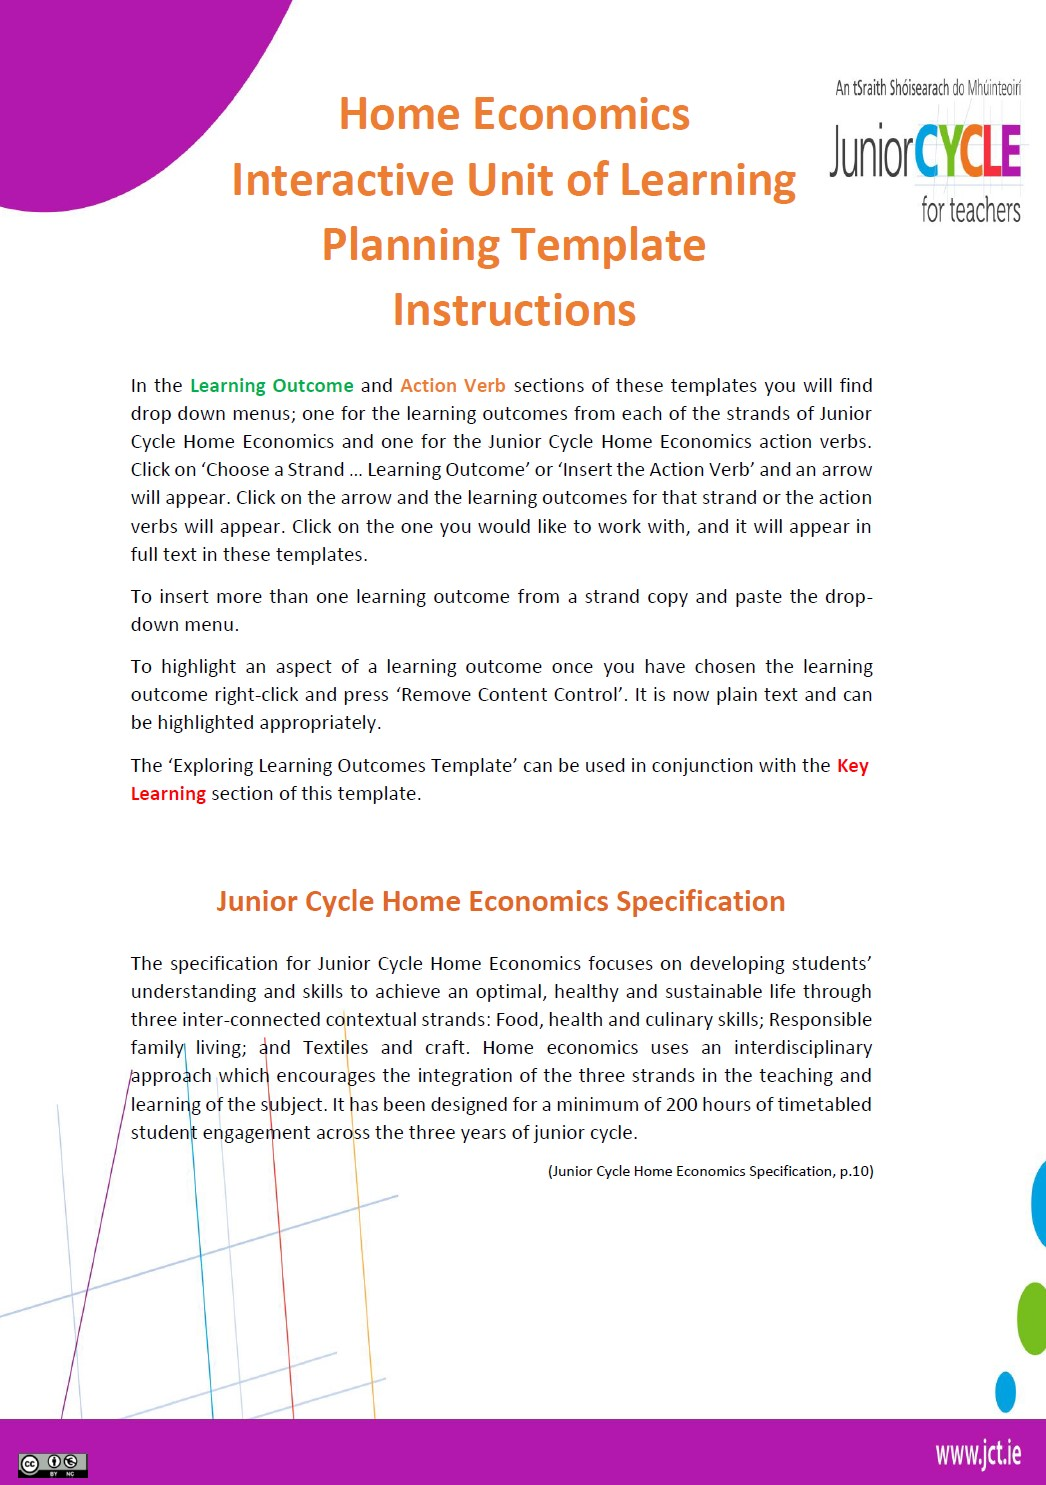 Home Economics Interactive Unit of Learning Planning Template Instructions